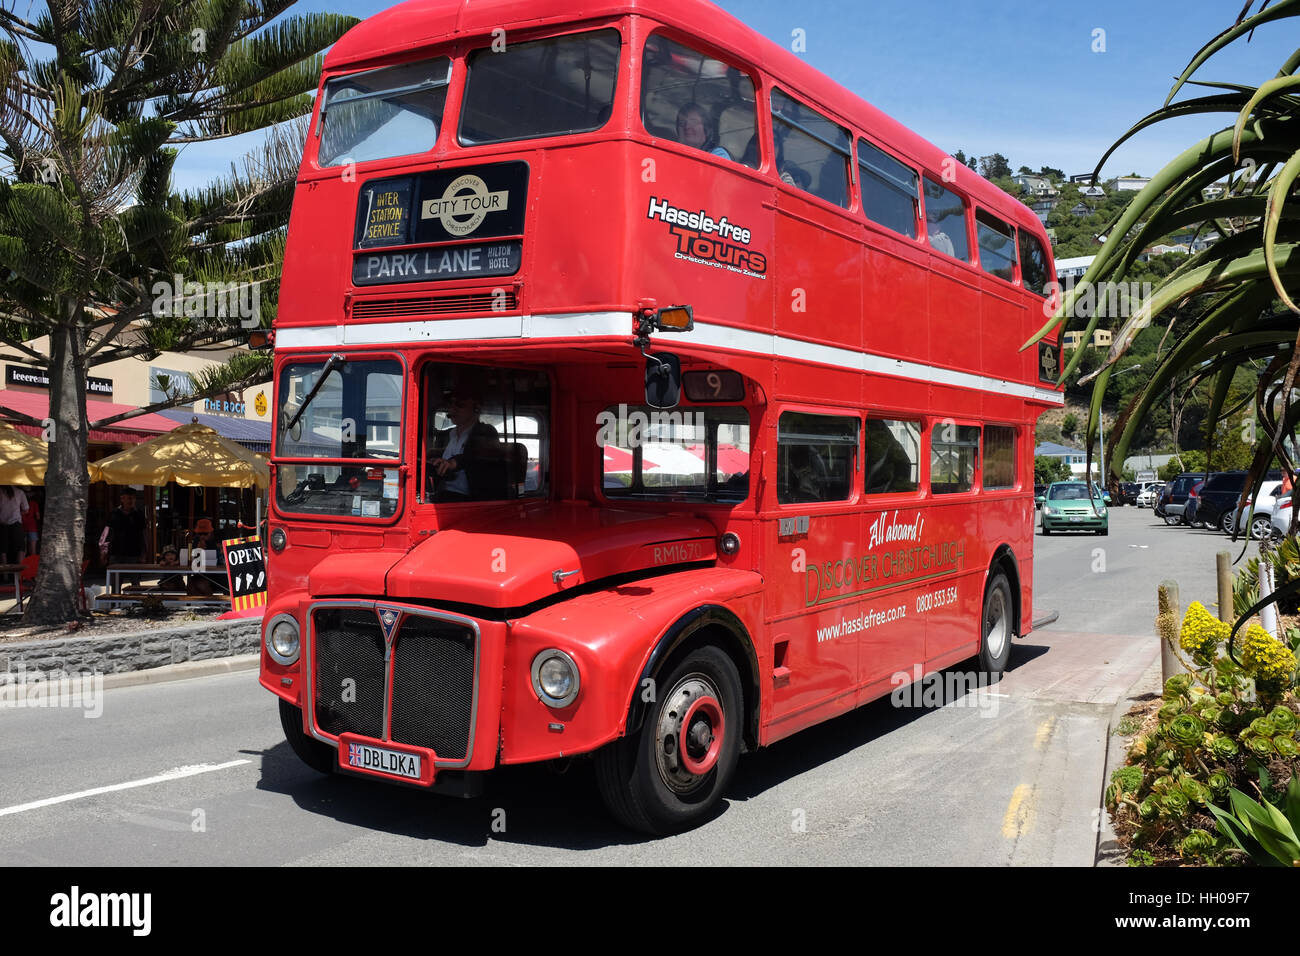 A London double-decker bus used for tourists trips in Christchurch, New Zealand. - Stock Image